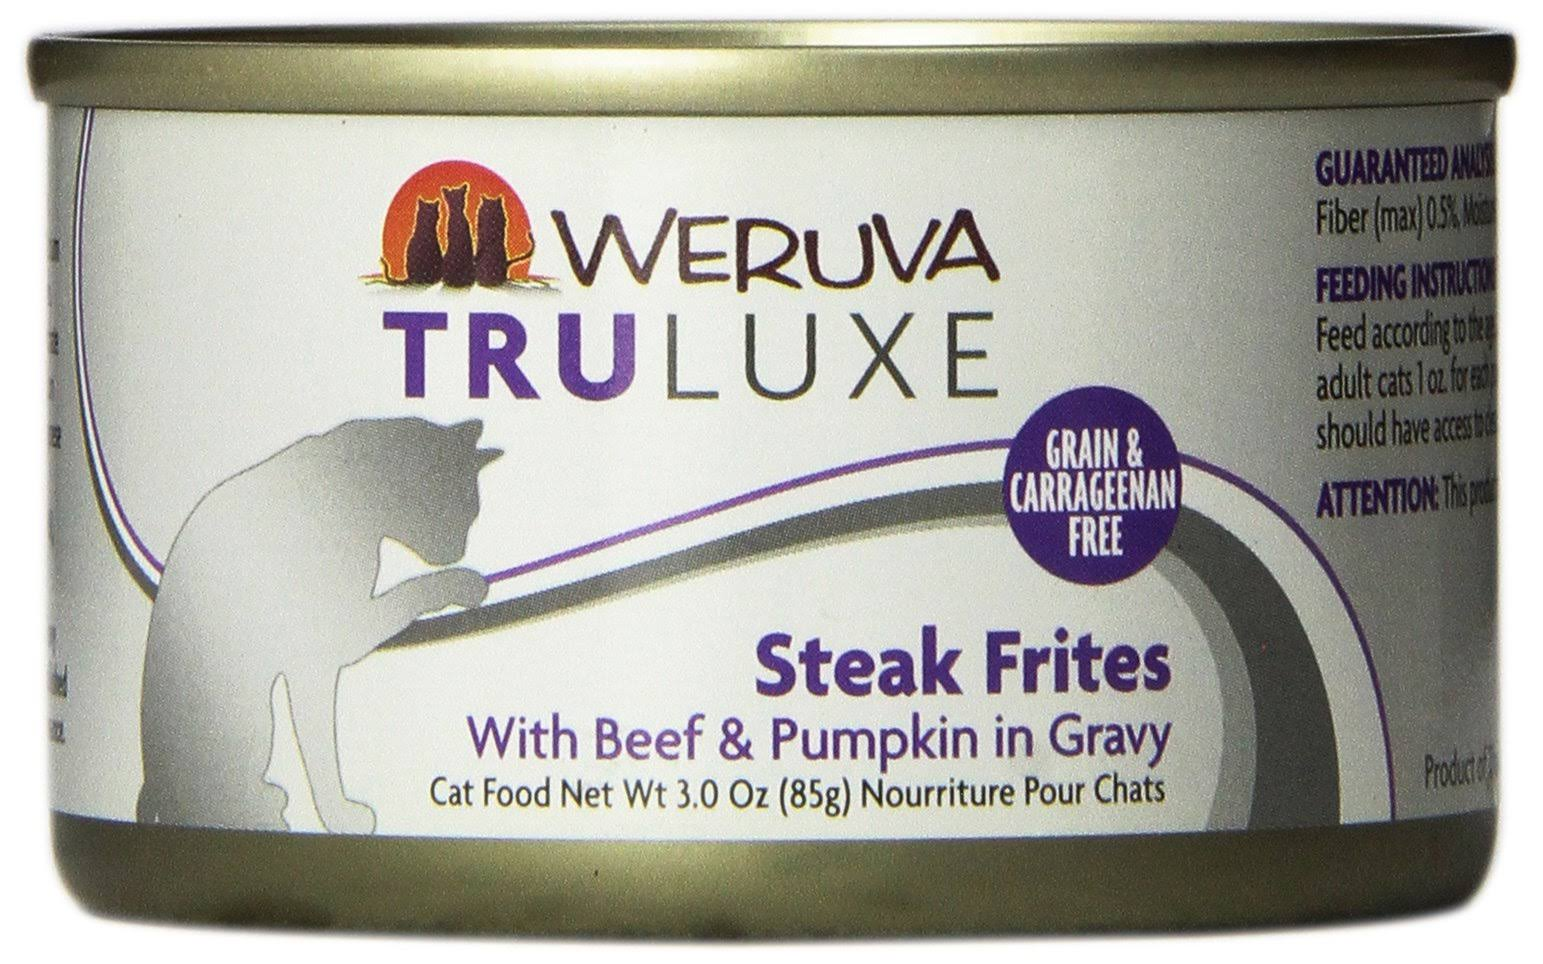 Weruva Grain Free Truluxe Canned Cat Food - Steak Frites, Adult